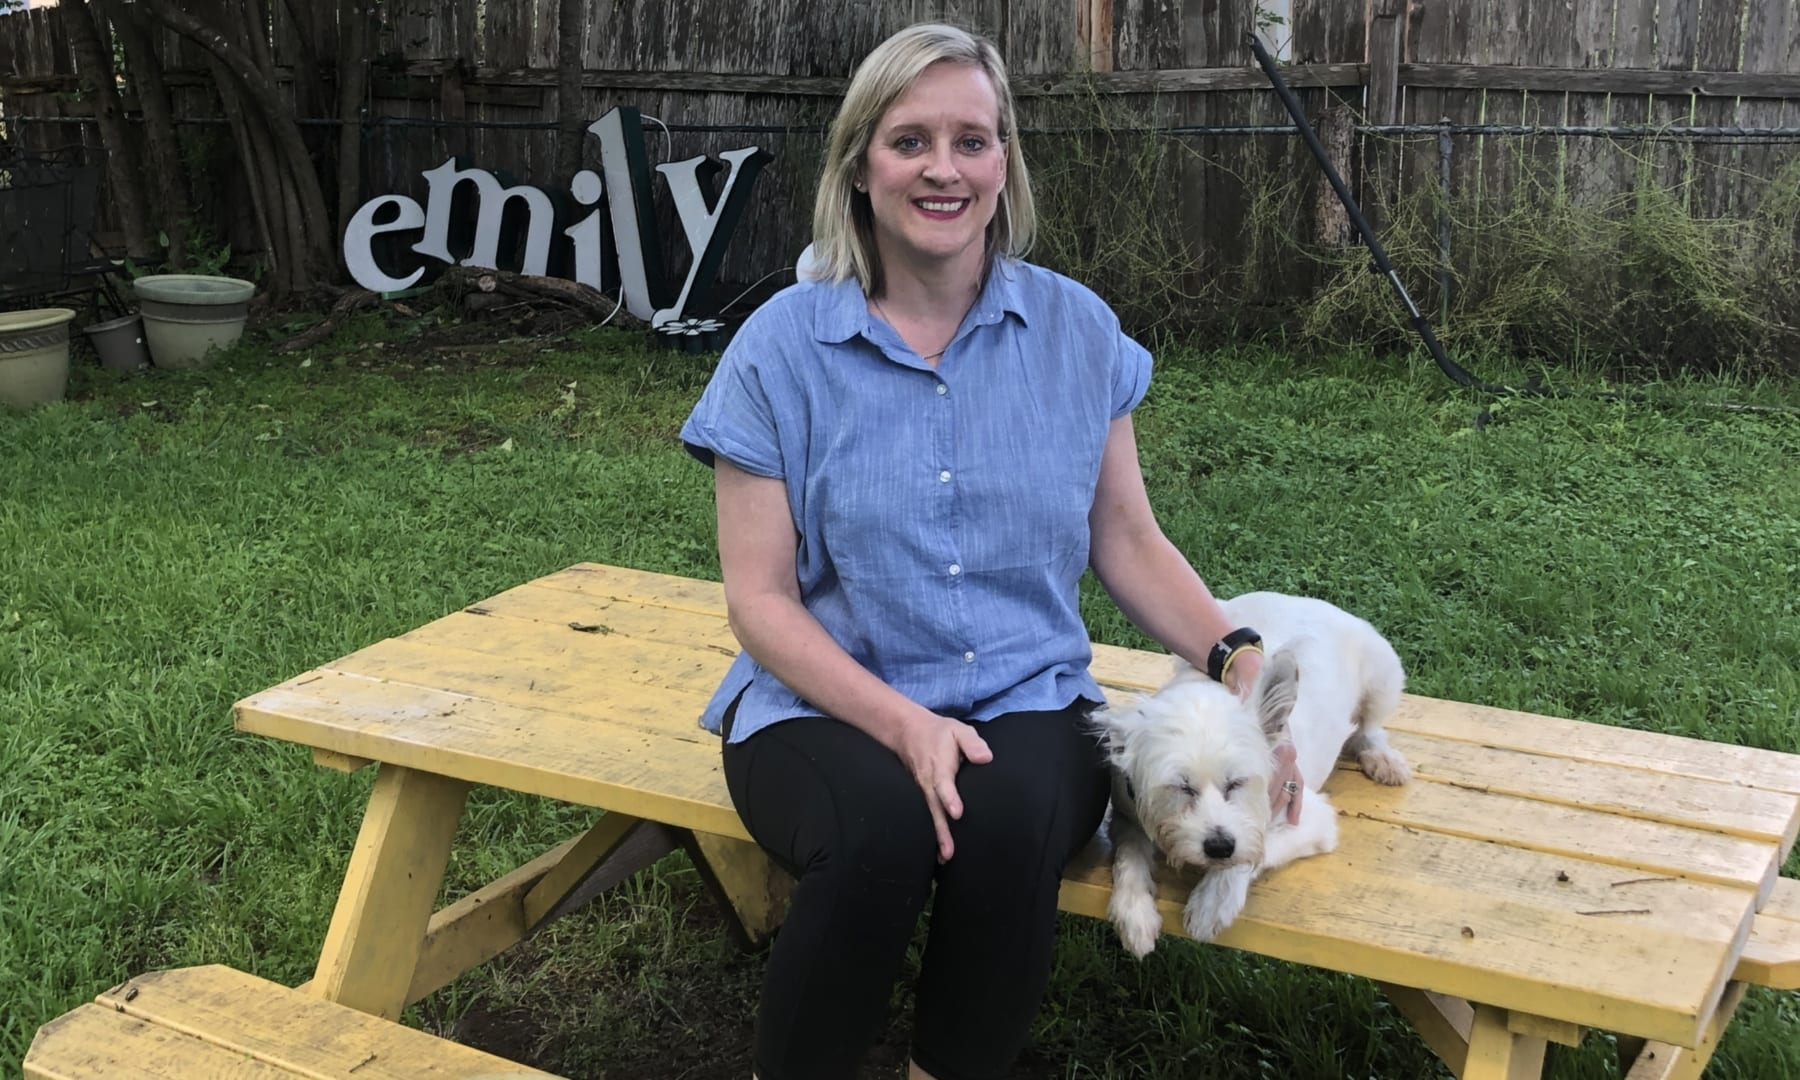 Image of Emily Stevens and one of her dogs sitting on a picnic table.